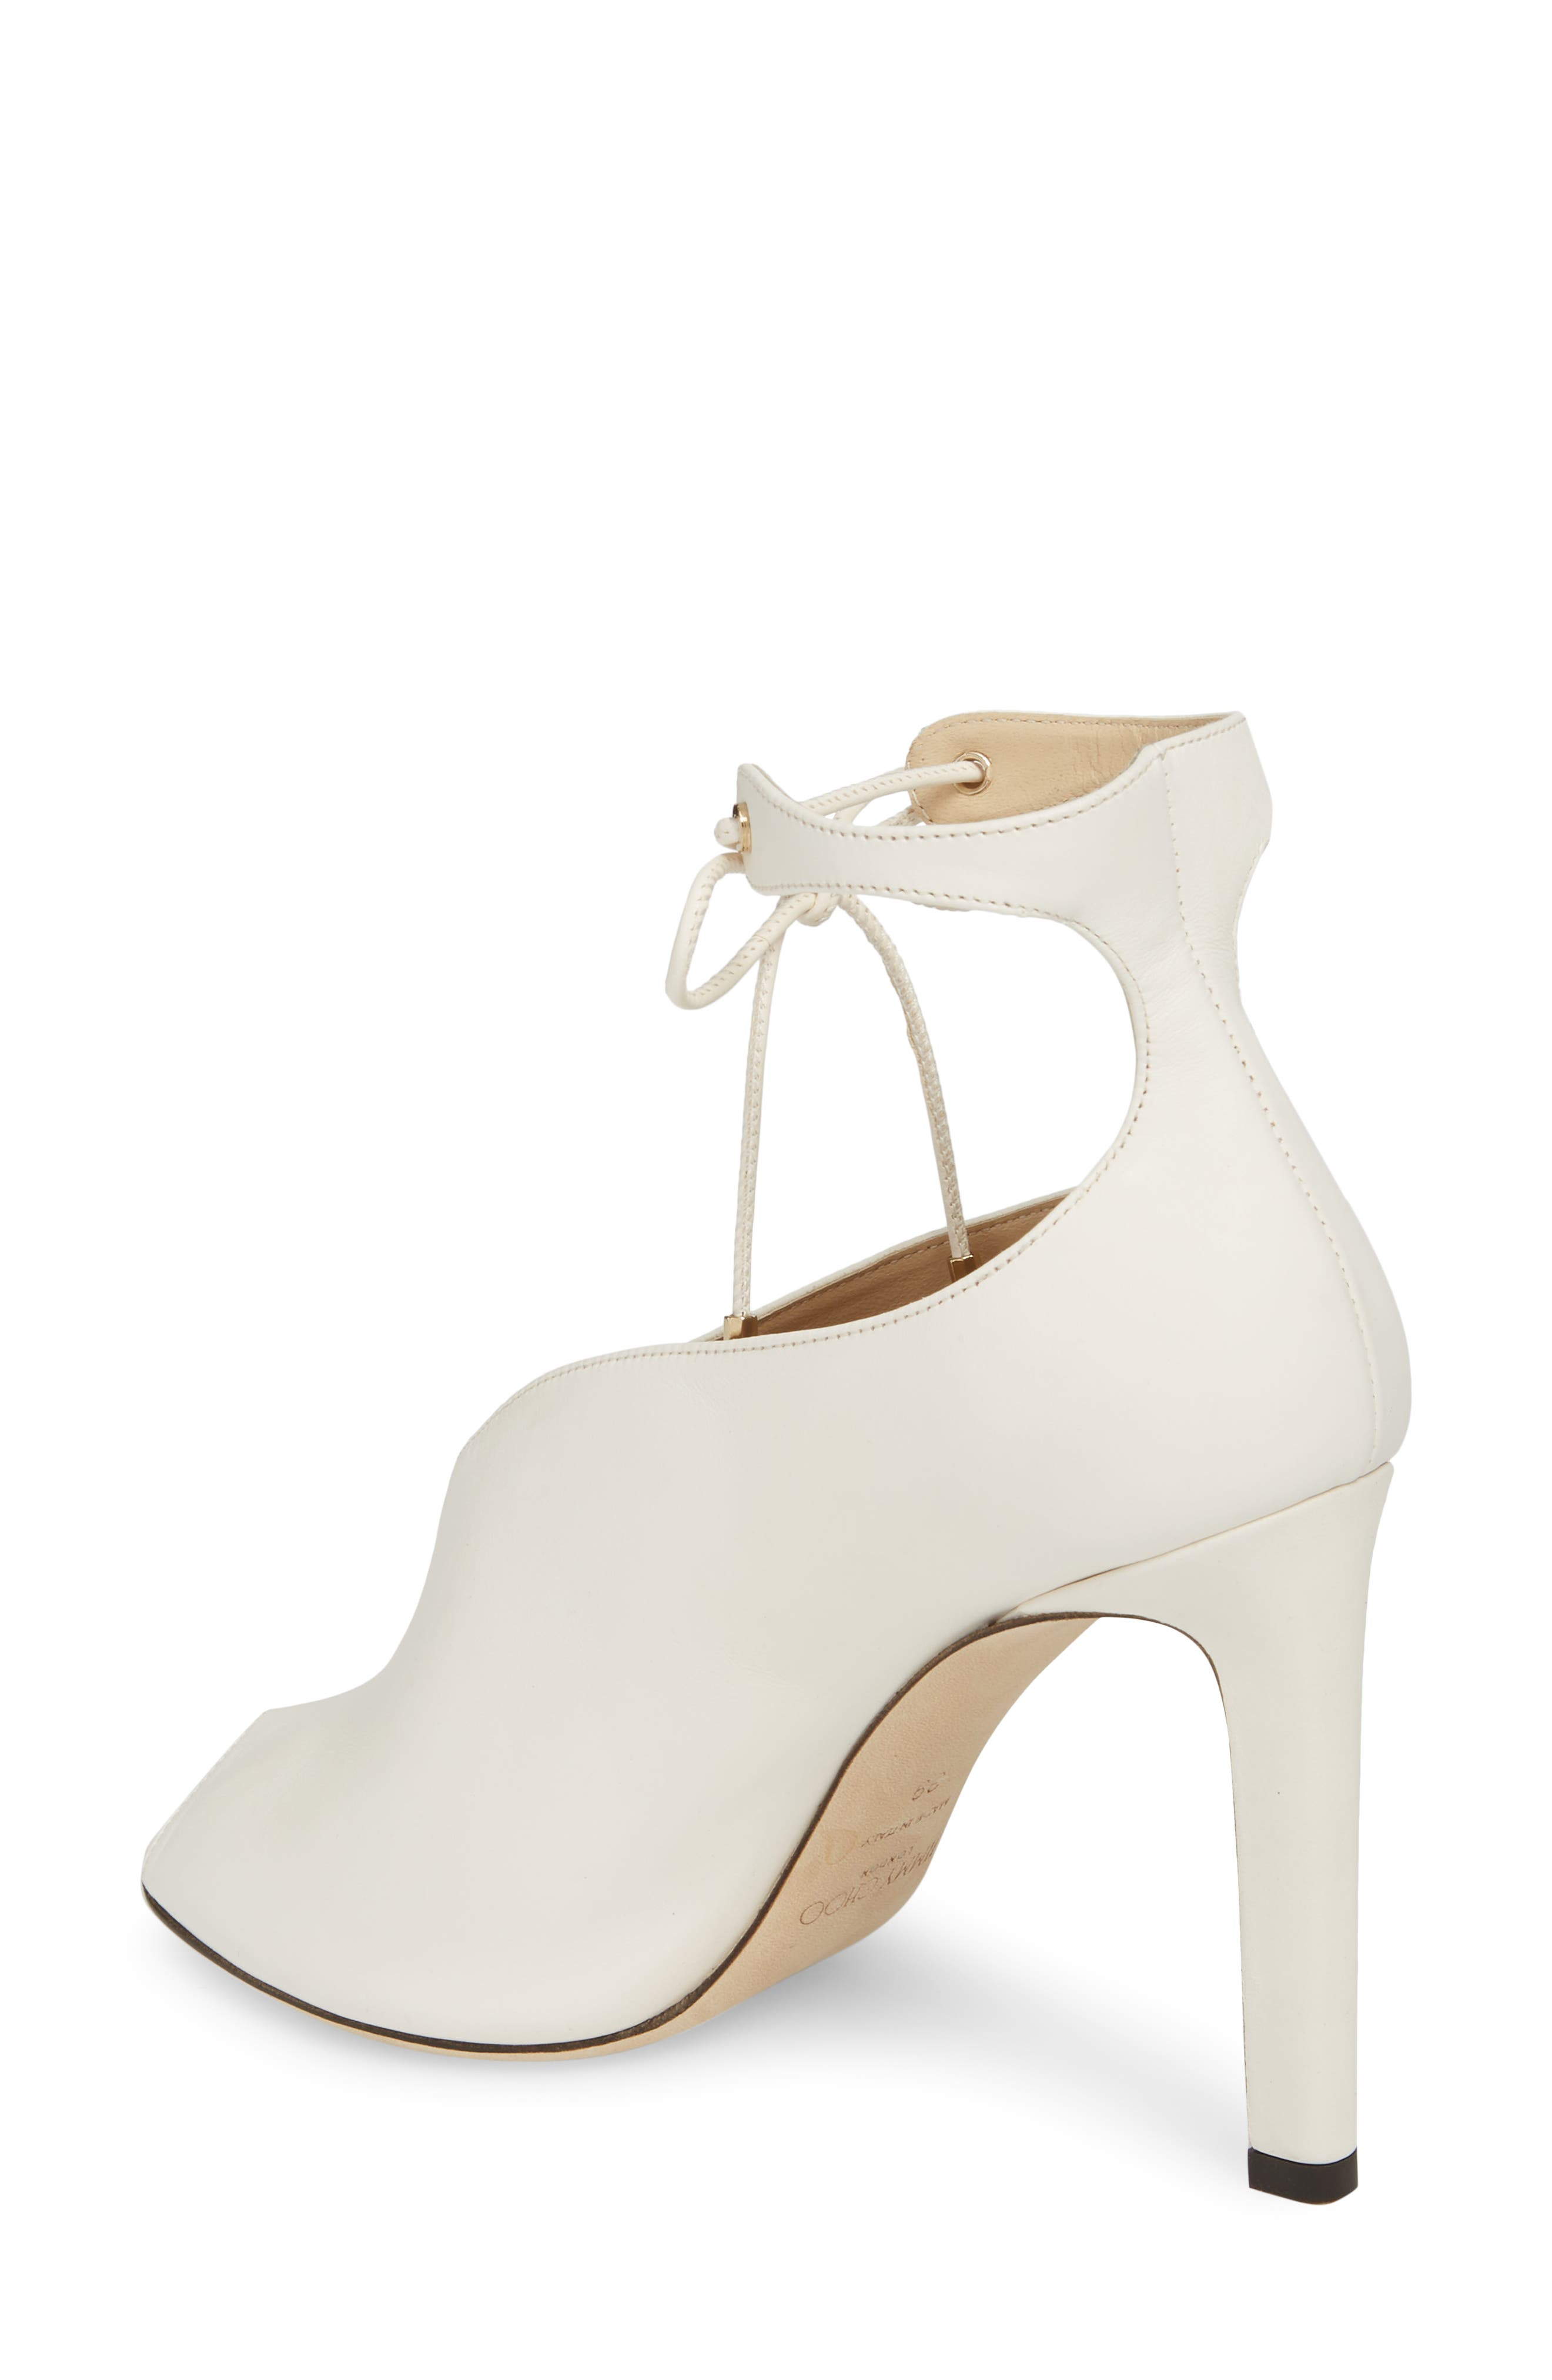 Sayra Ankle Tie Bootie,                             Alternate thumbnail 2, color,                             Chalk